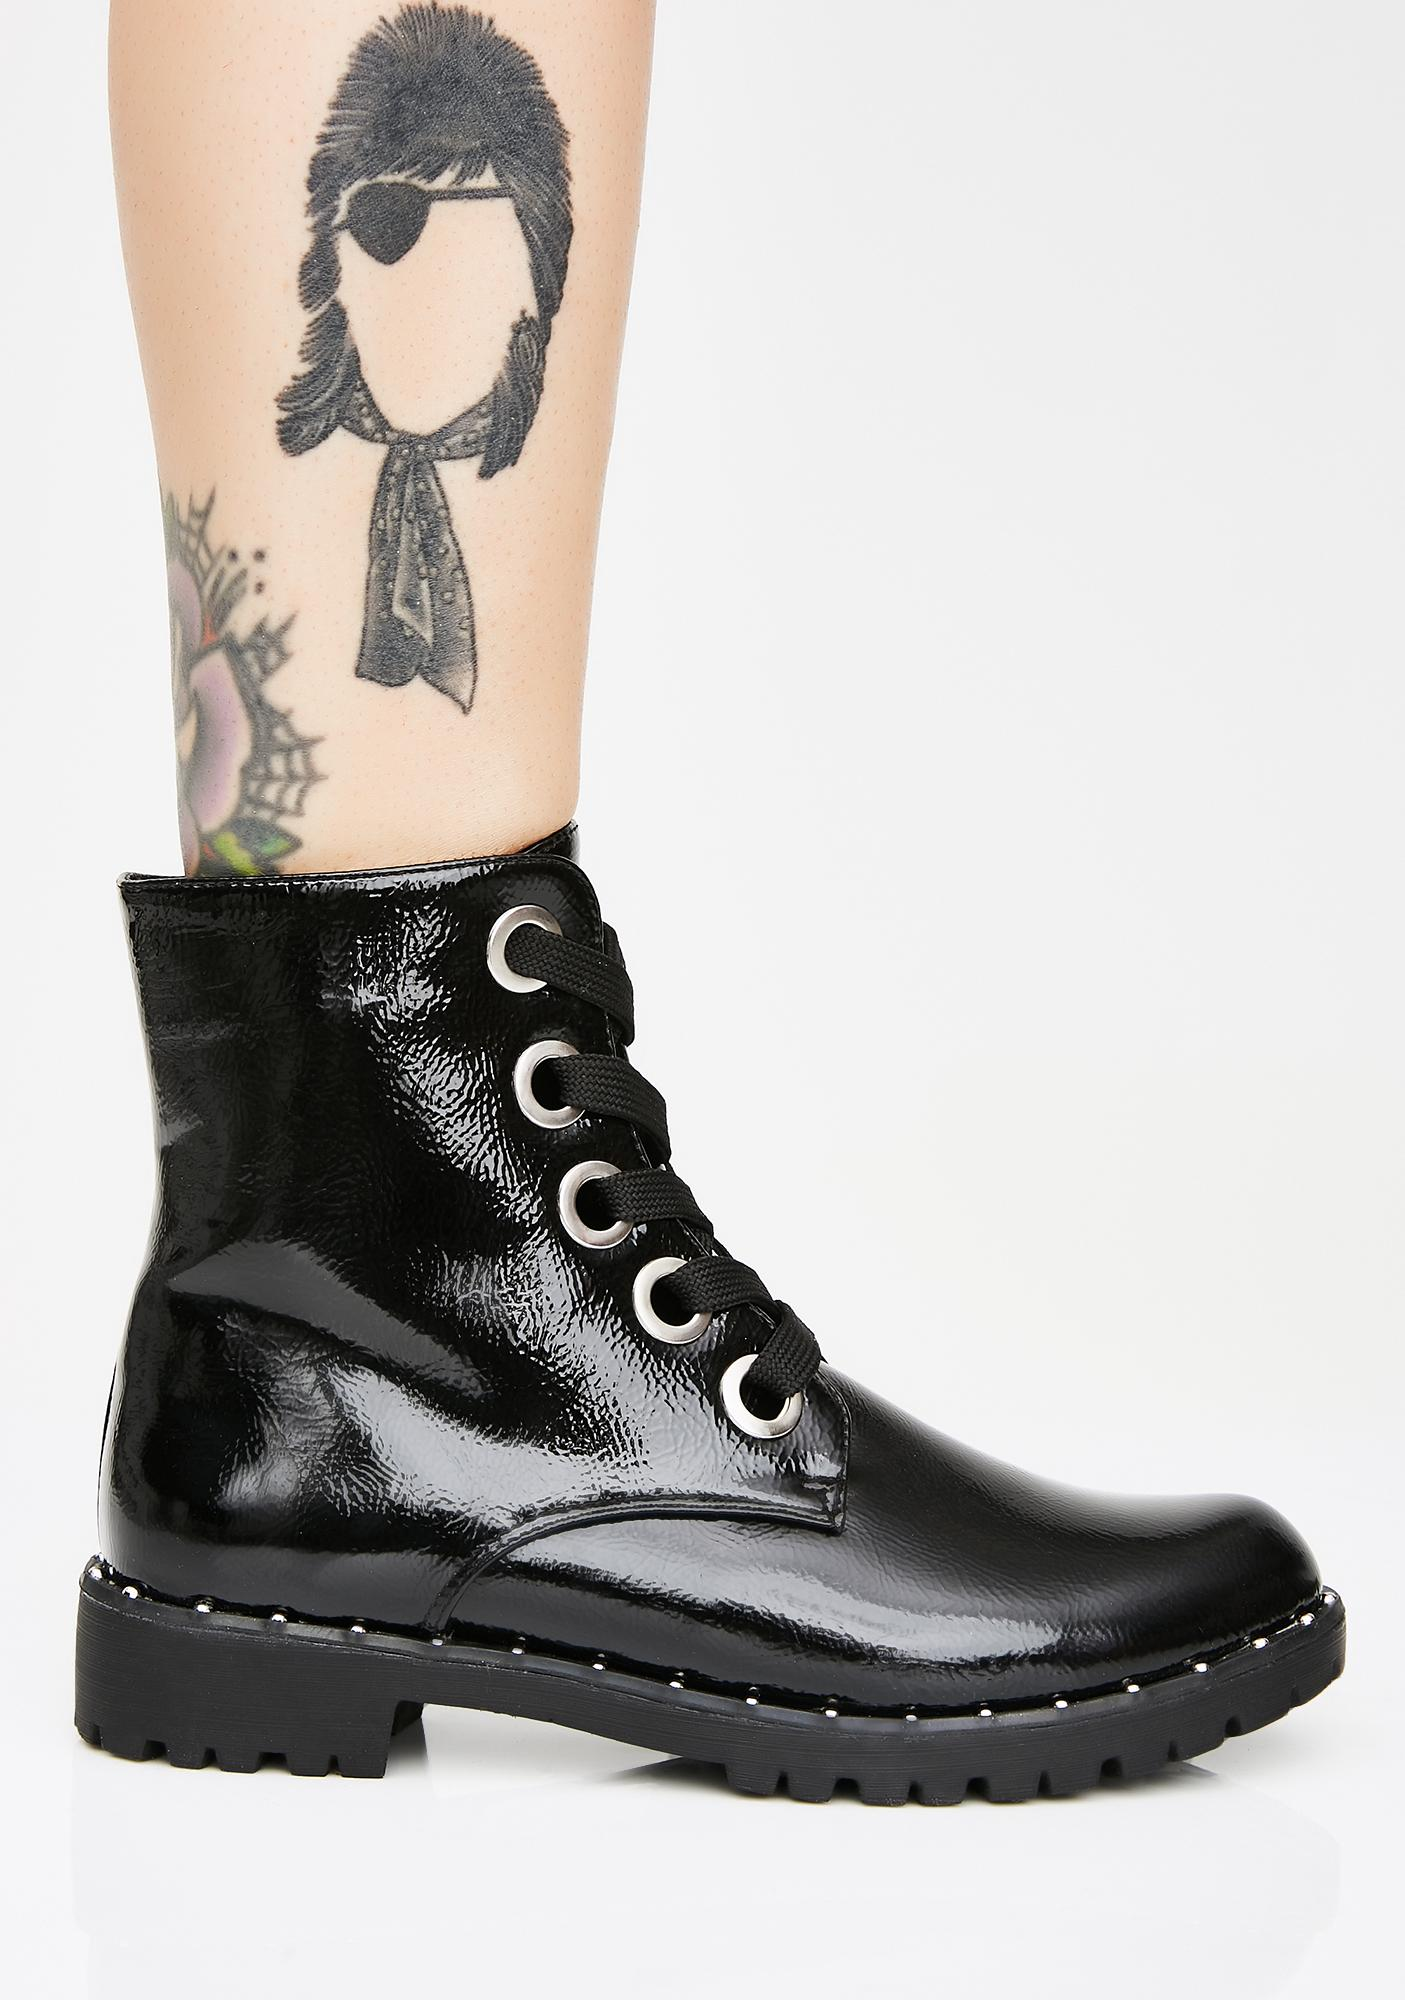 Midnight Combat Ready Lace-Up Boots